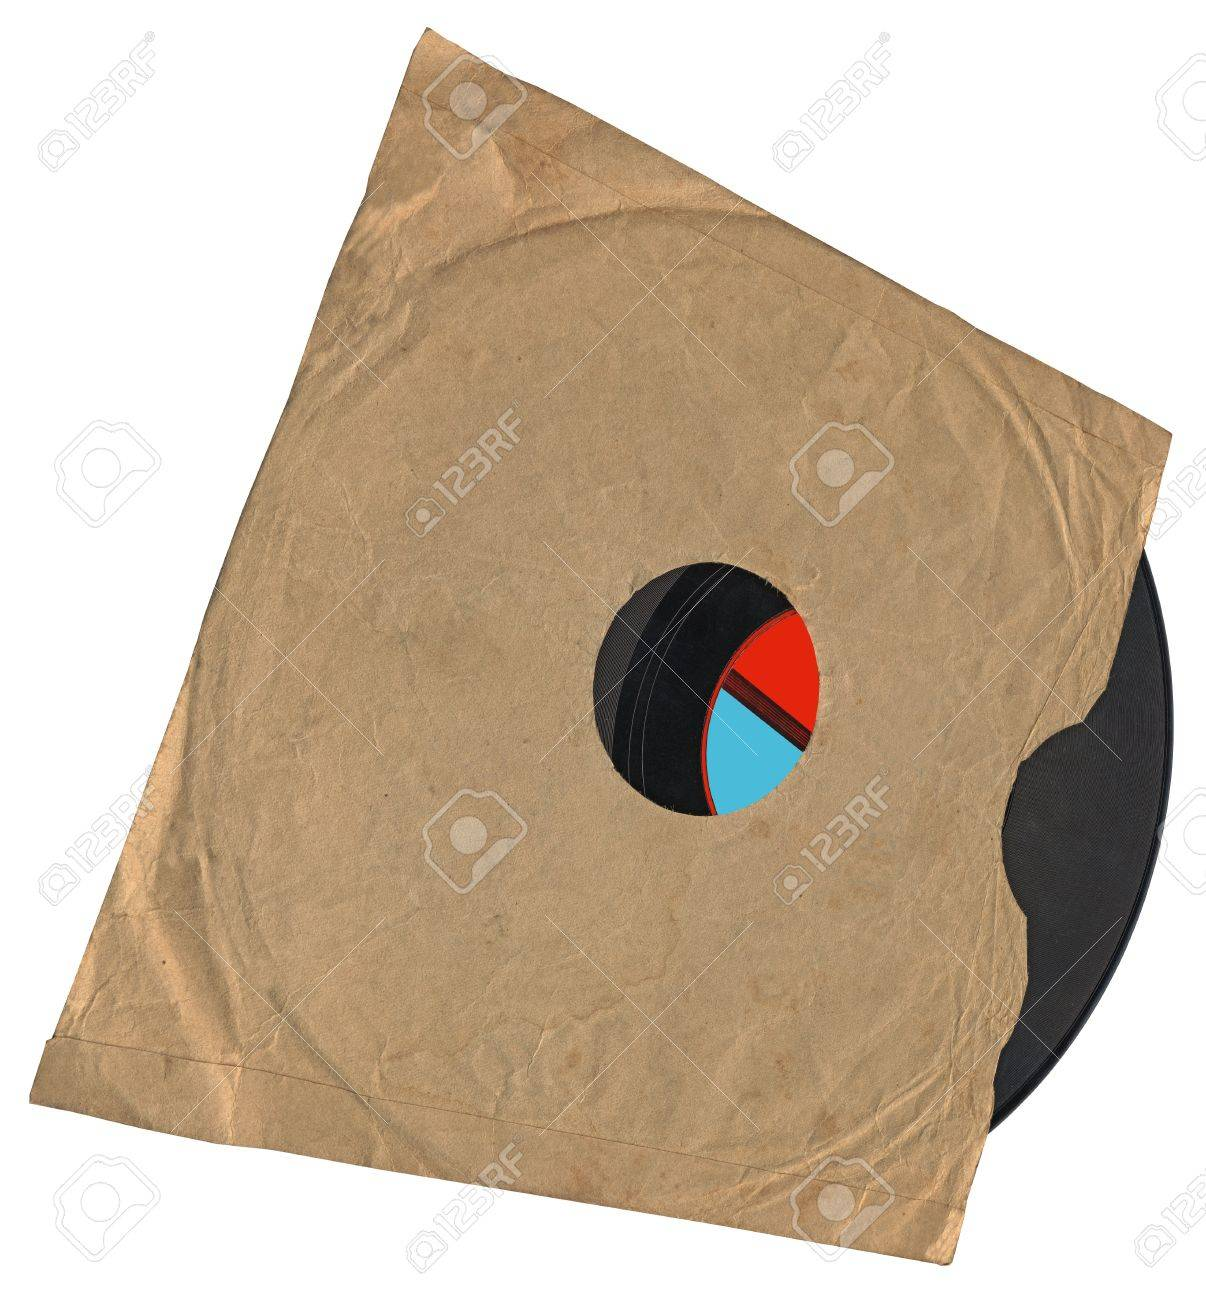 vintage envelope with packed single old retro vynil 78rpm audio record (object soundtrack frame) with scratches Stock Photo - 10060930